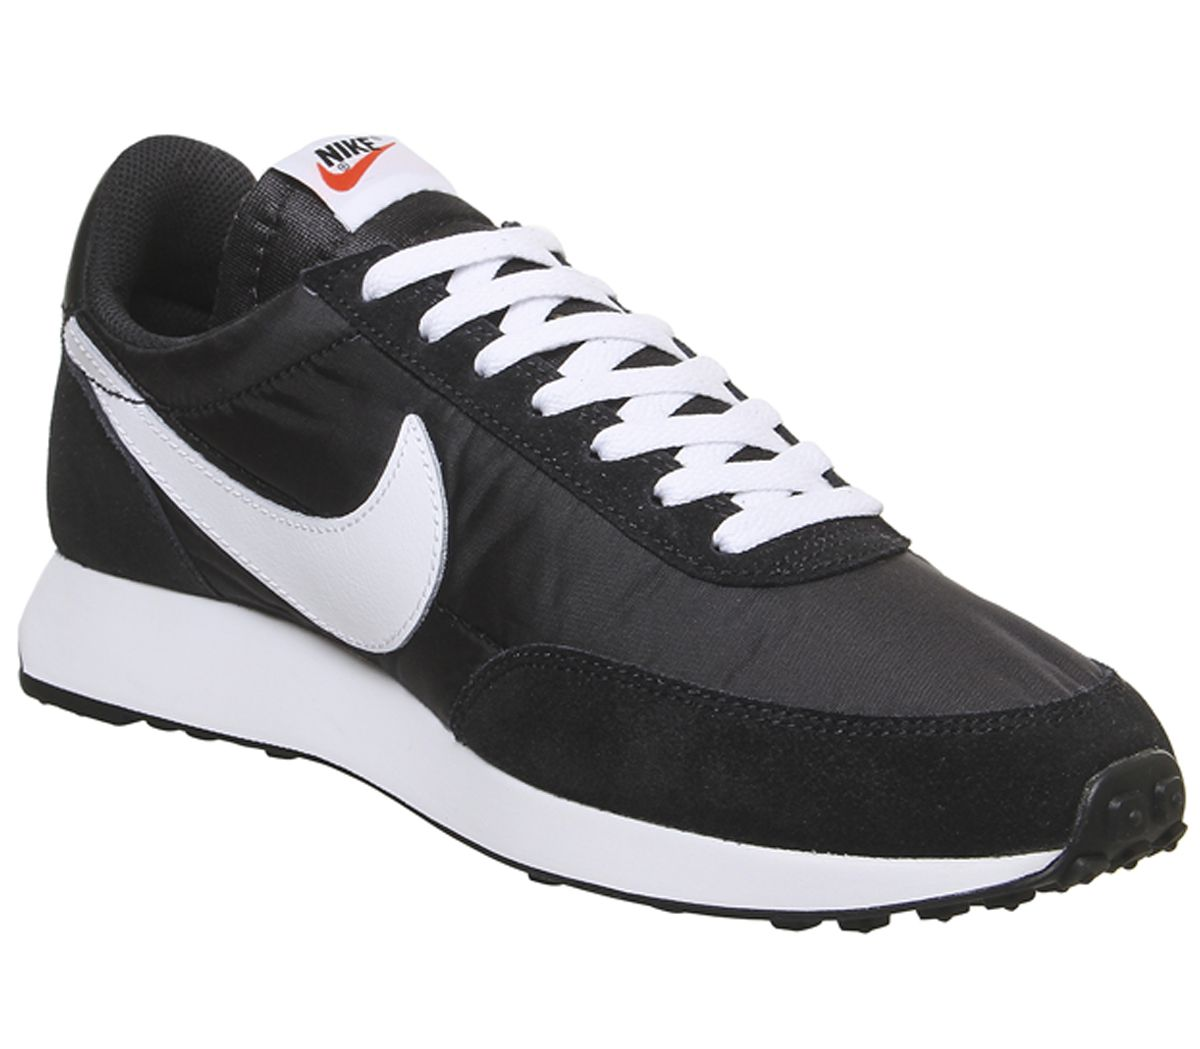 buy popular c185e 558bd Nike Air Tailwind 79 Trainers Black White Team Orange - Hers ...